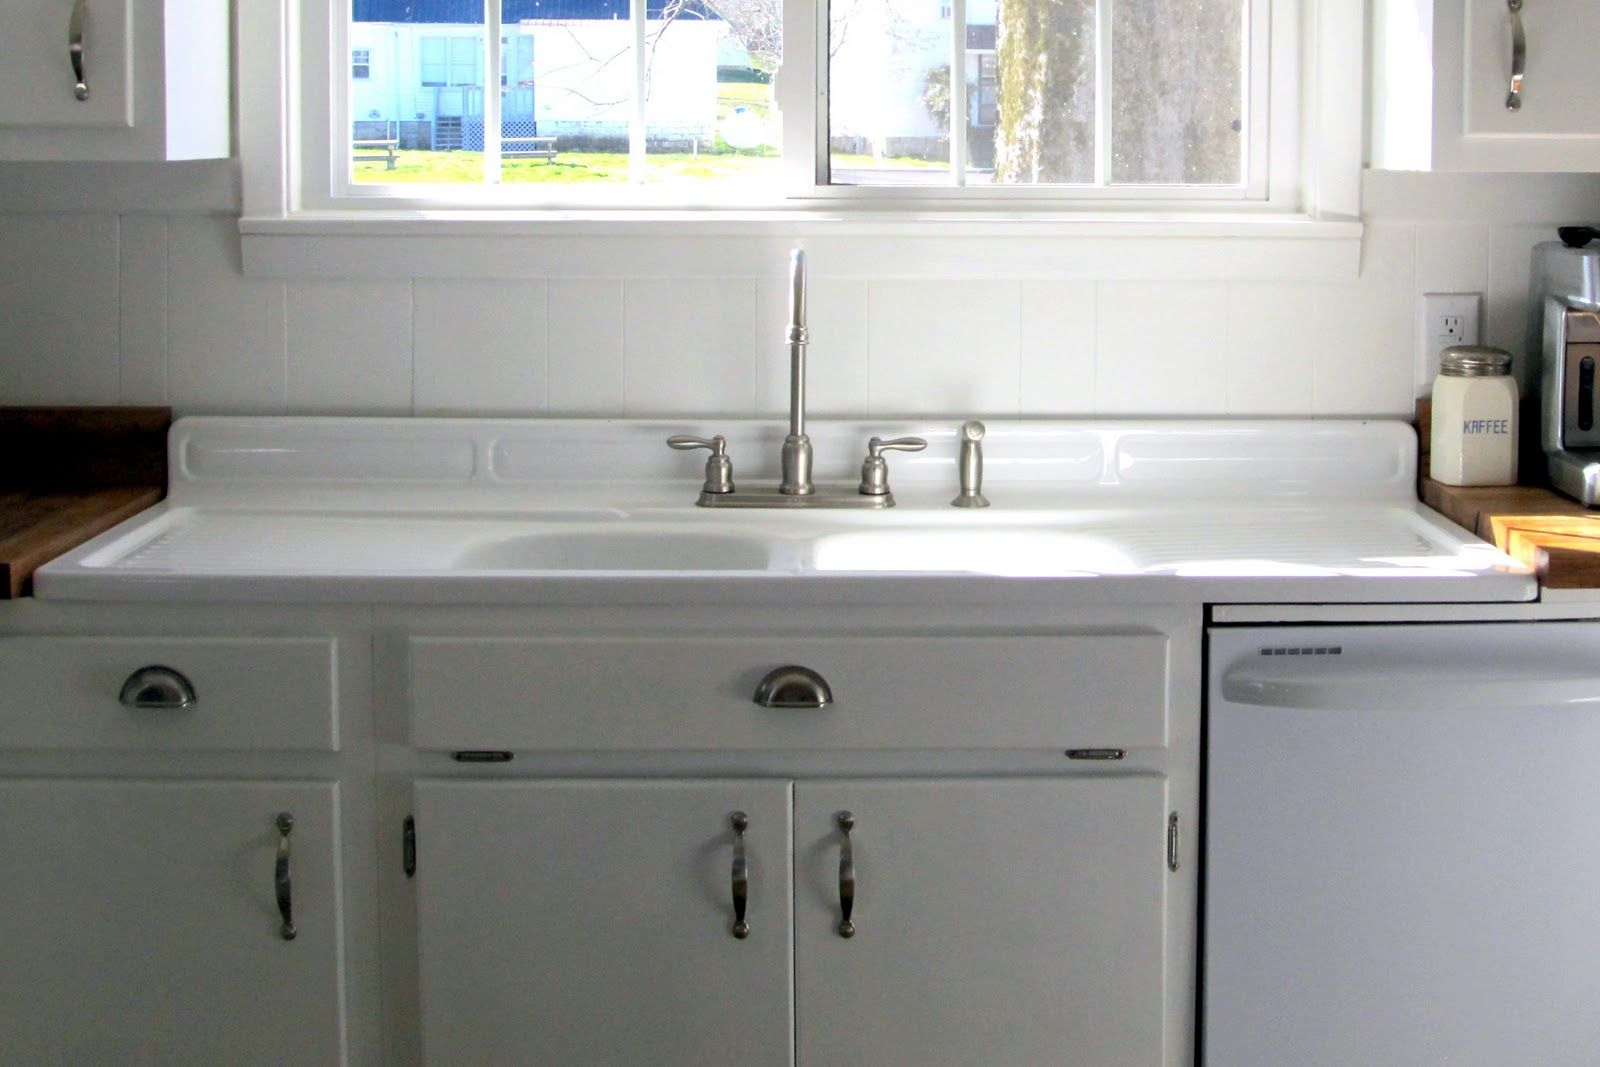 old fashioned sinks kitchen fashioned sinks kitchen with side boards farmhouse 3636